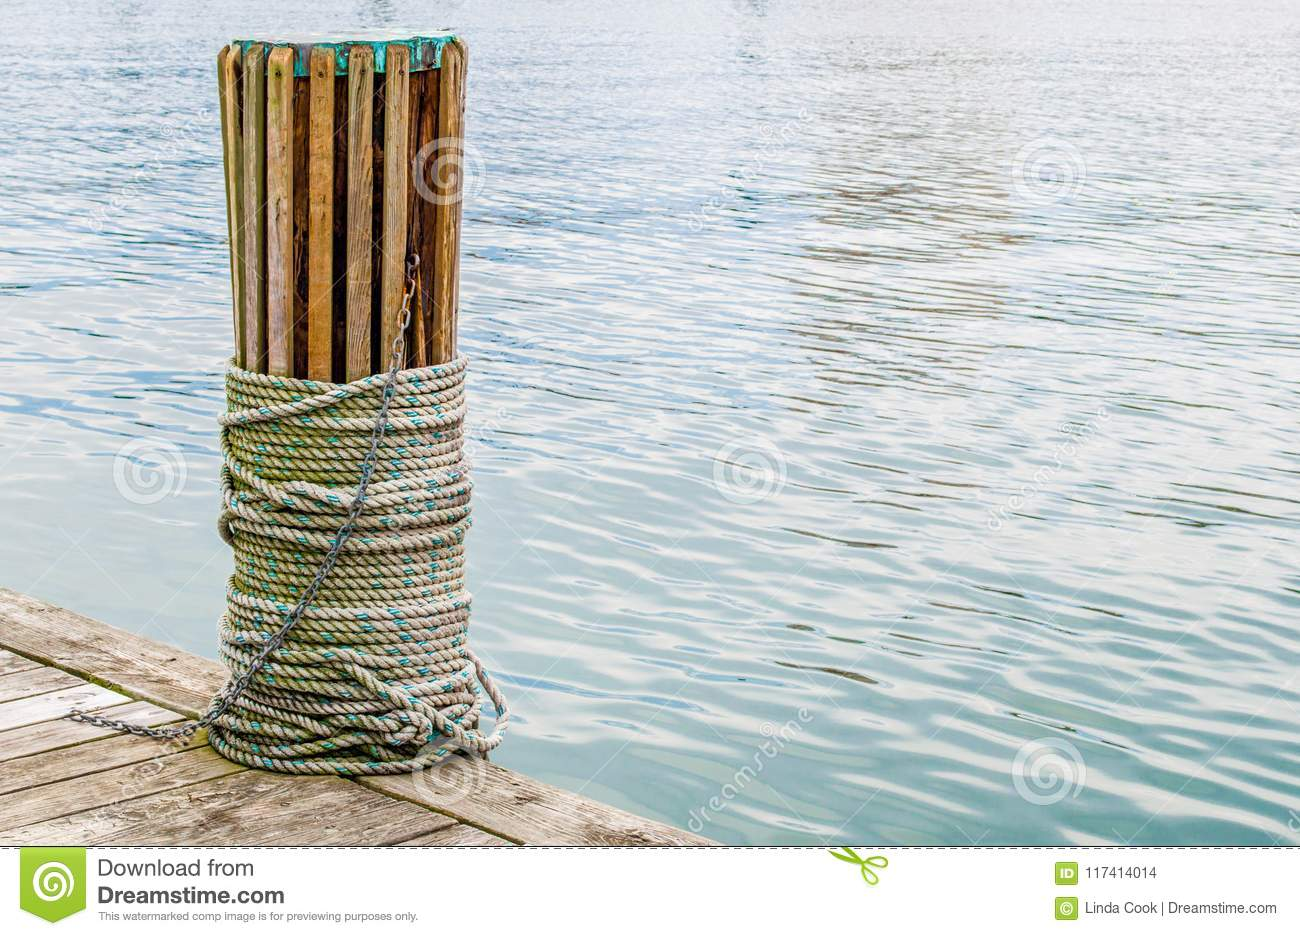 Wooden nautical batten with rope wrapped around it at the waterfront